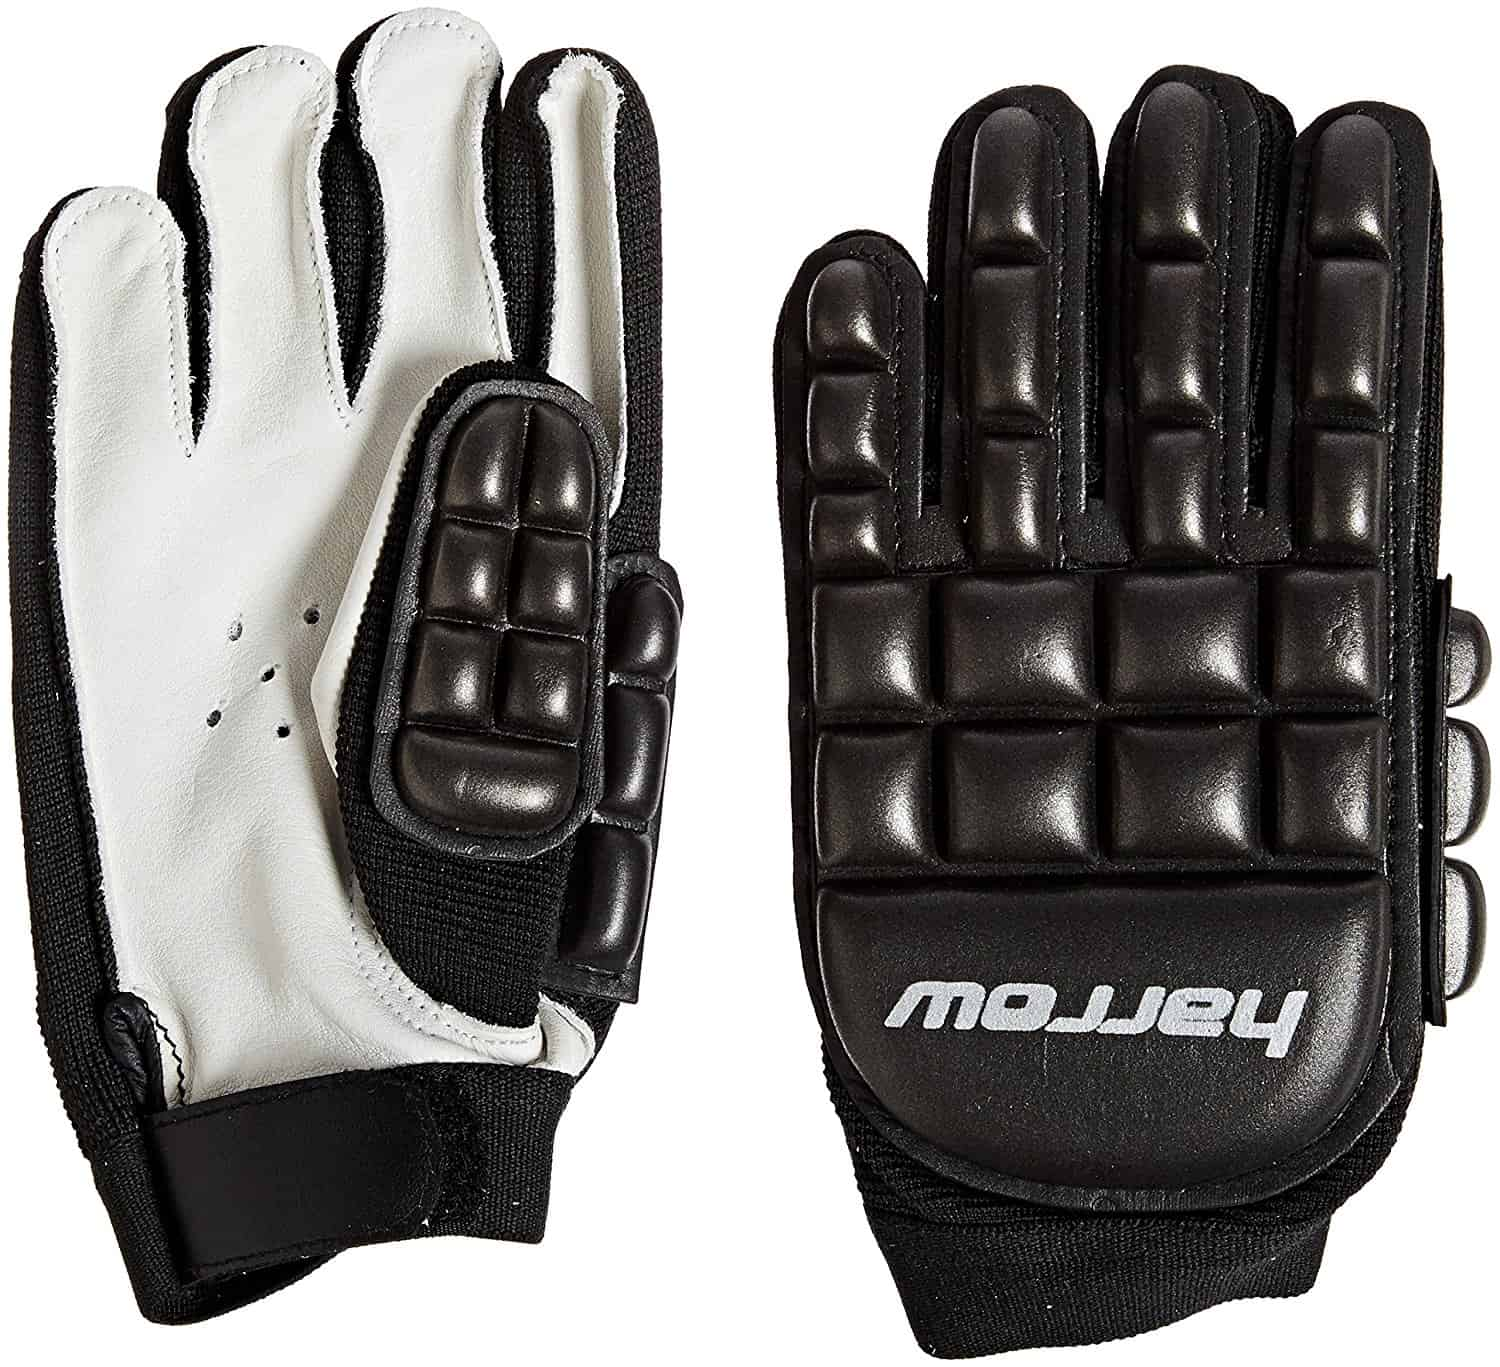 Harrow Double Down Gloves